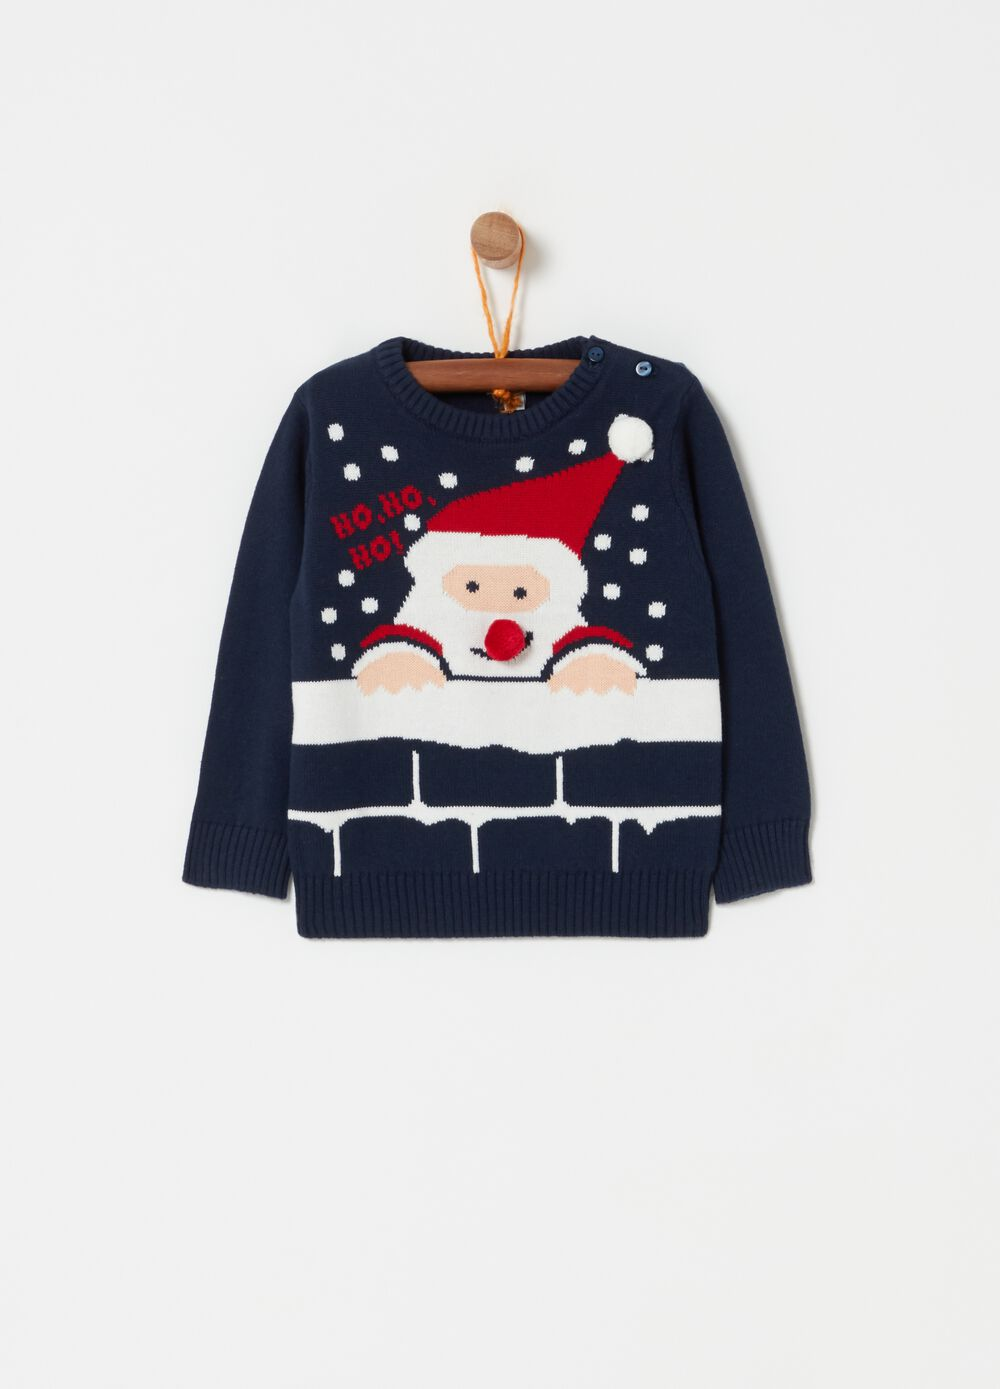 Knitted crew-neck top with Father Christmas embroidery